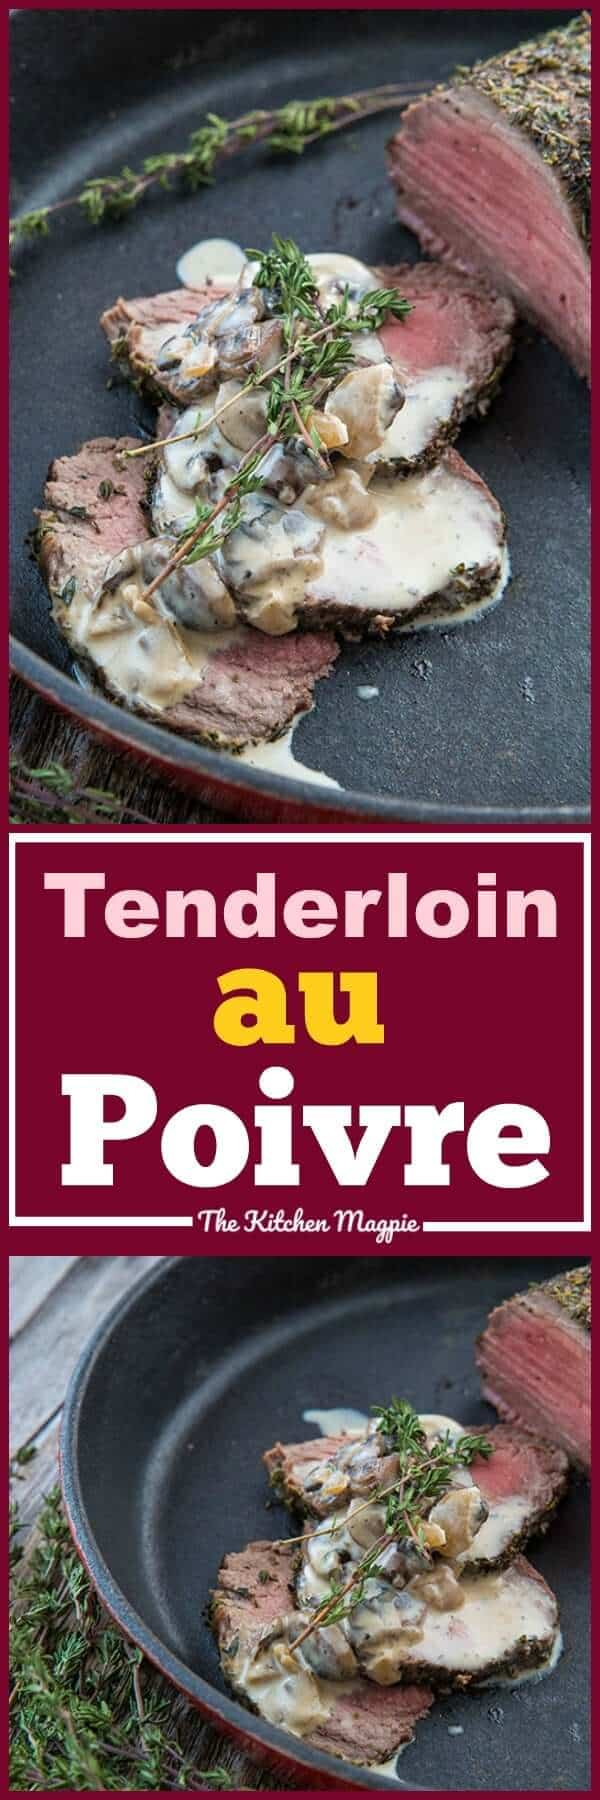 This Skillet Tenderloin Roast au Poivre & Mushrooms takes the classic French Steak au Poivre and uses a pepper and salt encrusted tenderloin roast instead. #beef #roast #french #pepper #cognac #skillet